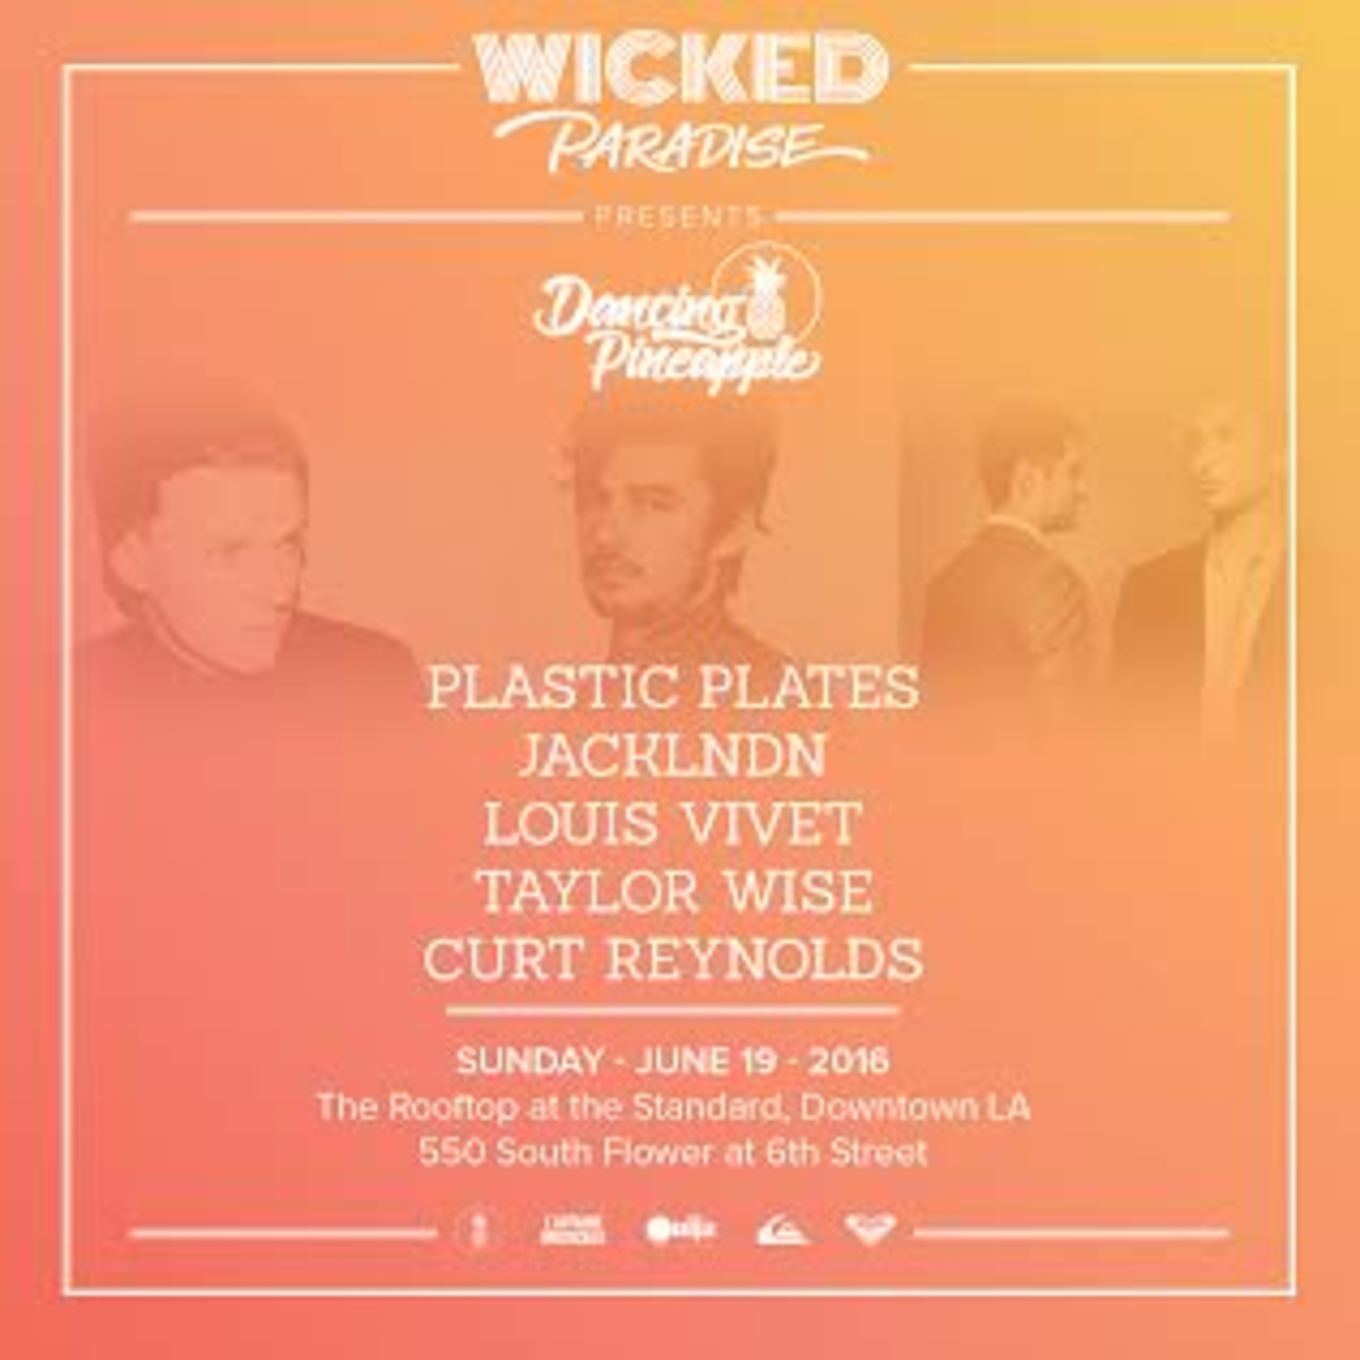 Wicked Paradise Present Dancing Pineapple Feat Plastic Plates JackLNDN Louis Vivet At The